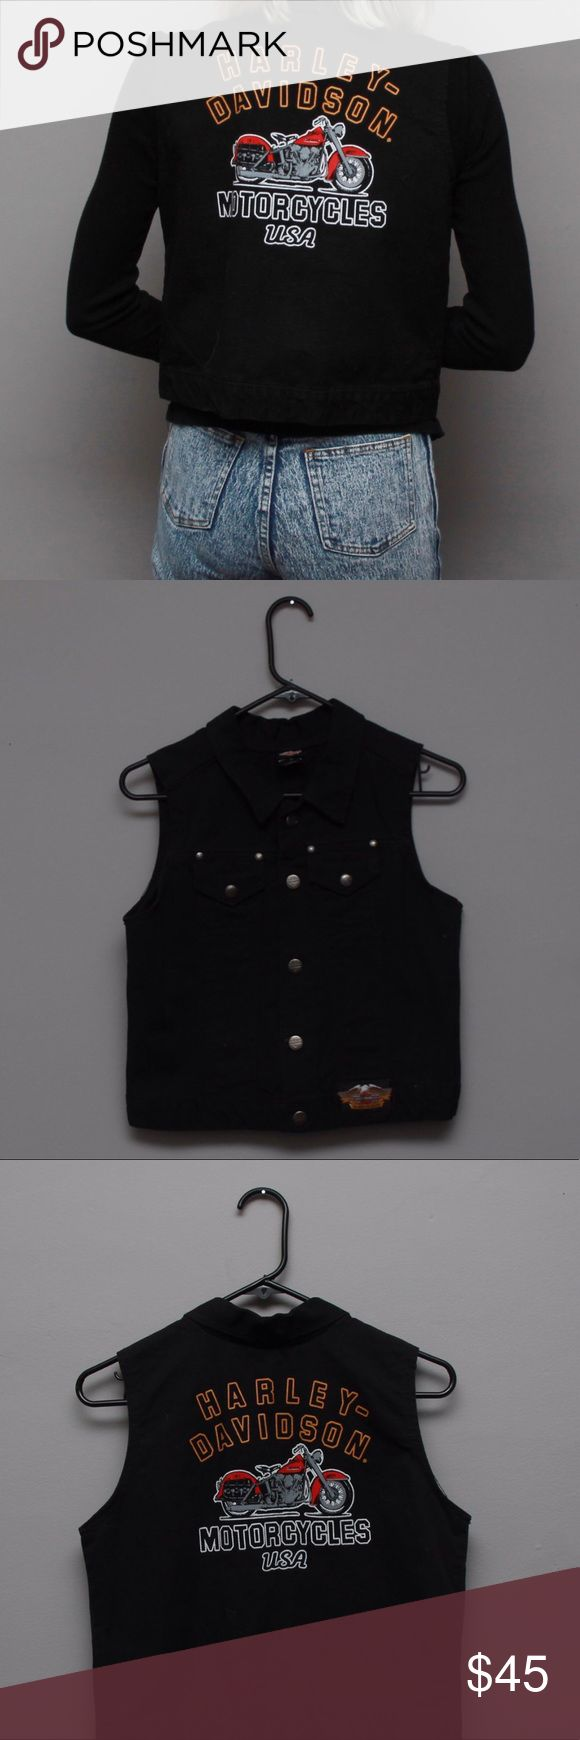 Harley Davidson Motorcycles black denim vest Harley Davidson Motorcycles black denim vest  Harley Davidson buttons all throughout and a patch on the bottom  The back is not embroidered, so don't be mistaken it appears to be an iron on but it's original Harley Davidson   Size 14 it would fit small-medium   Awesome piece! Harley-Davidson Jackets & Coats Vests